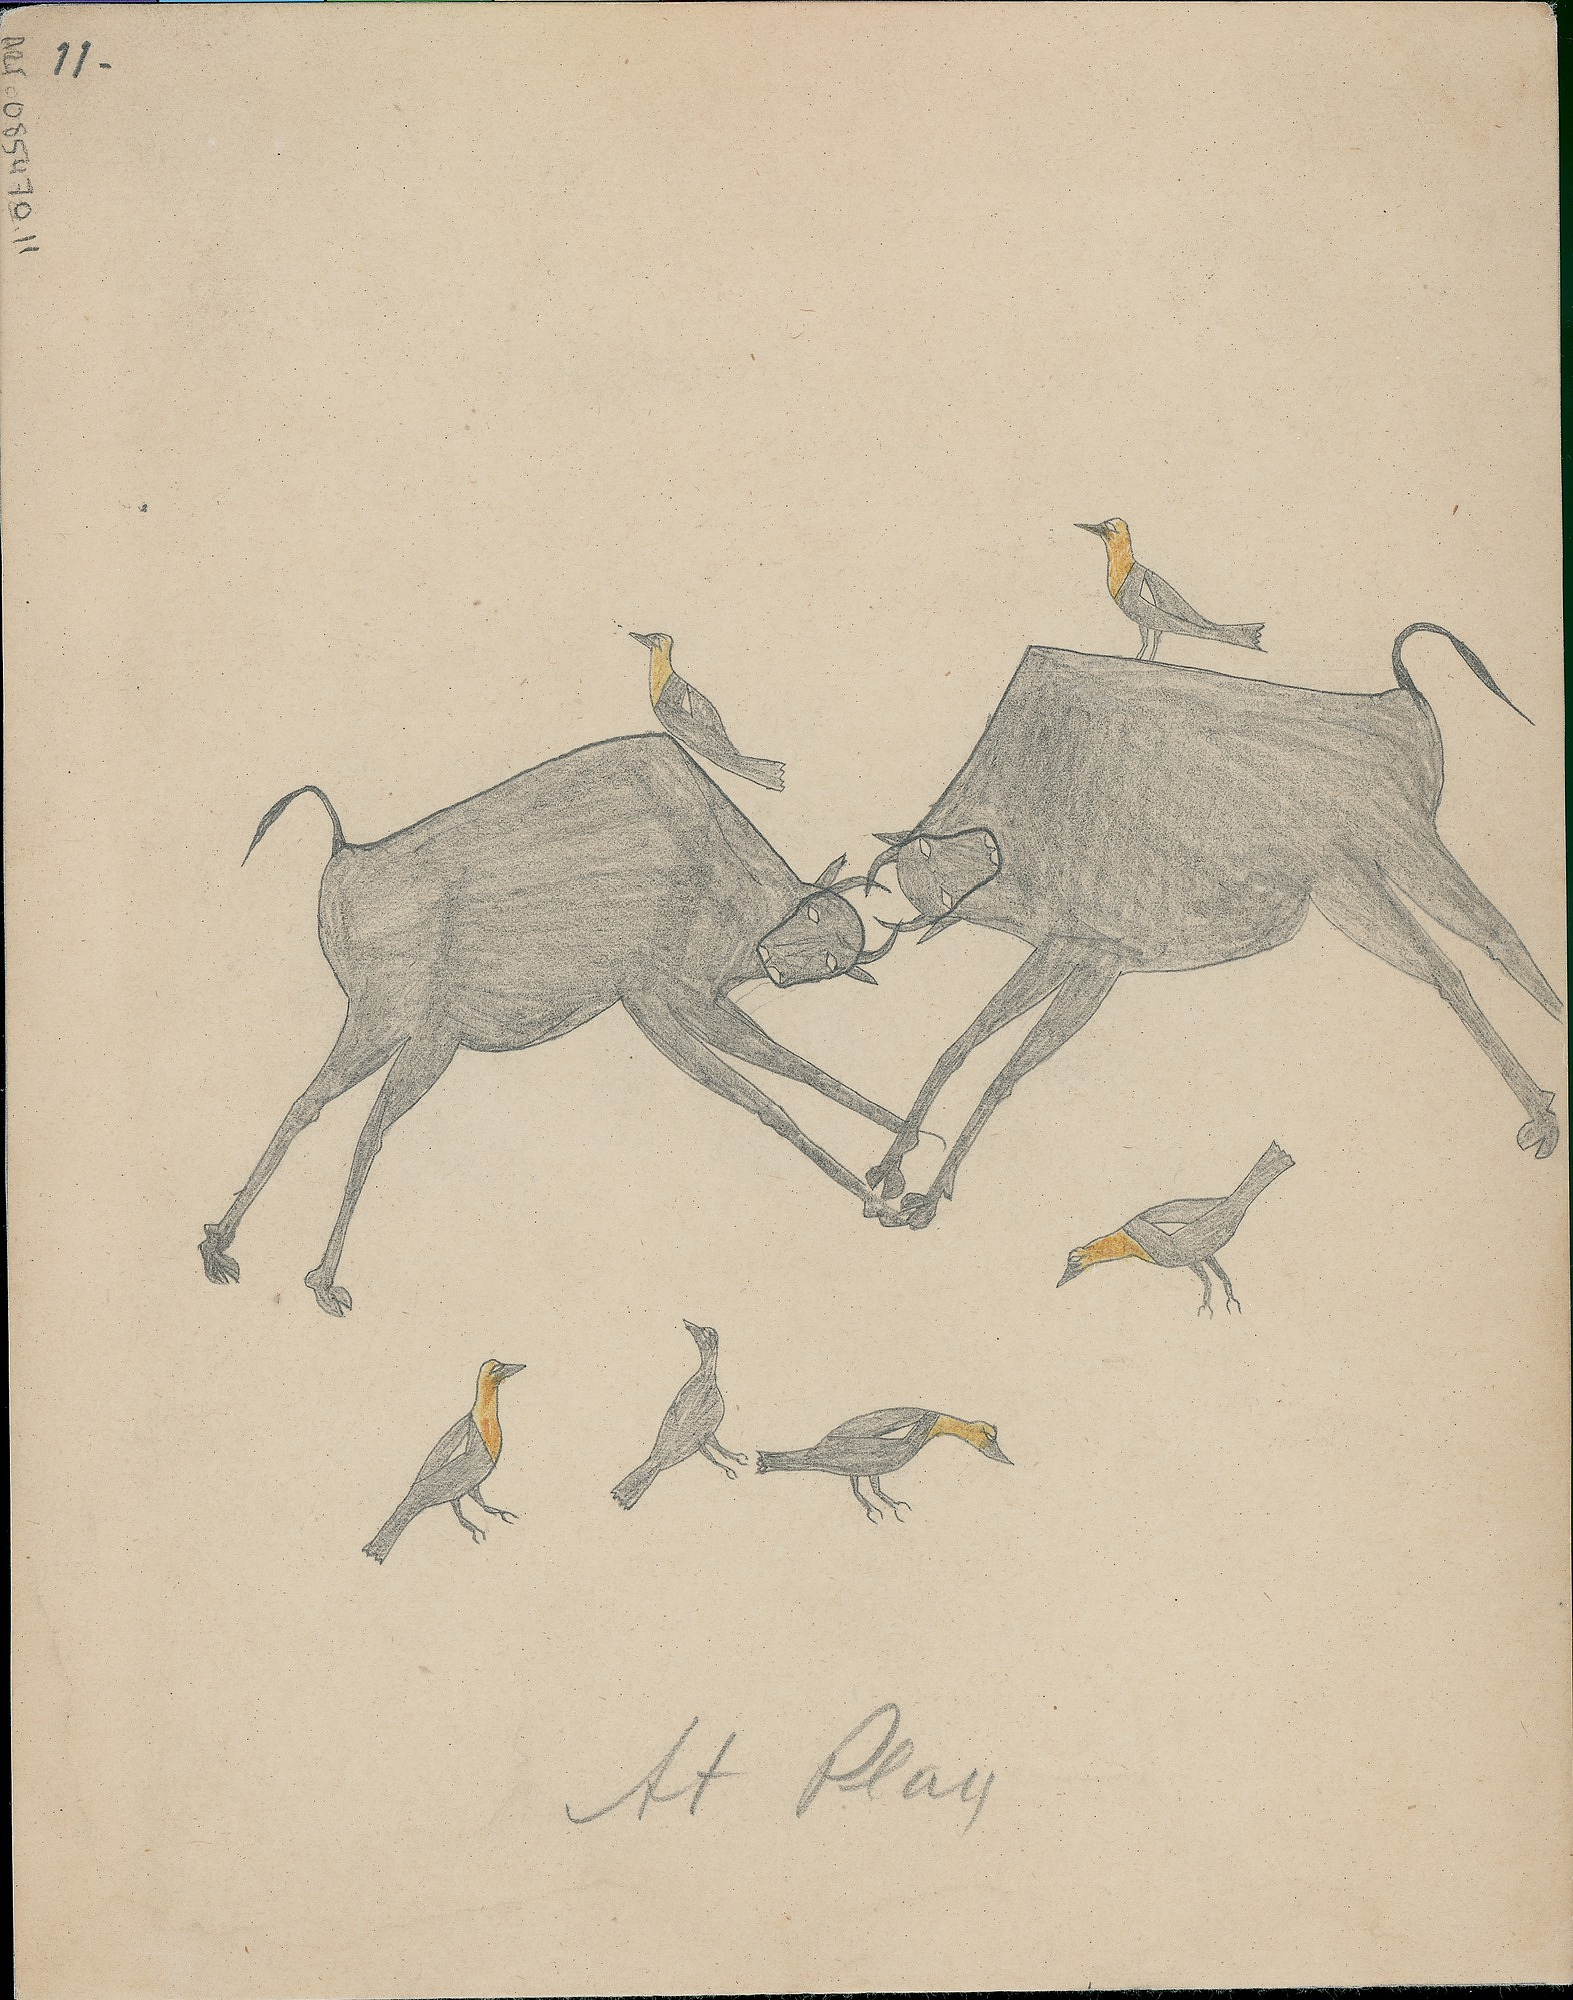 Anonymous Cheyenne drawing of two buffalo locking horns with yellow-headed buffalo birds on their backs and on ground, 1875 August